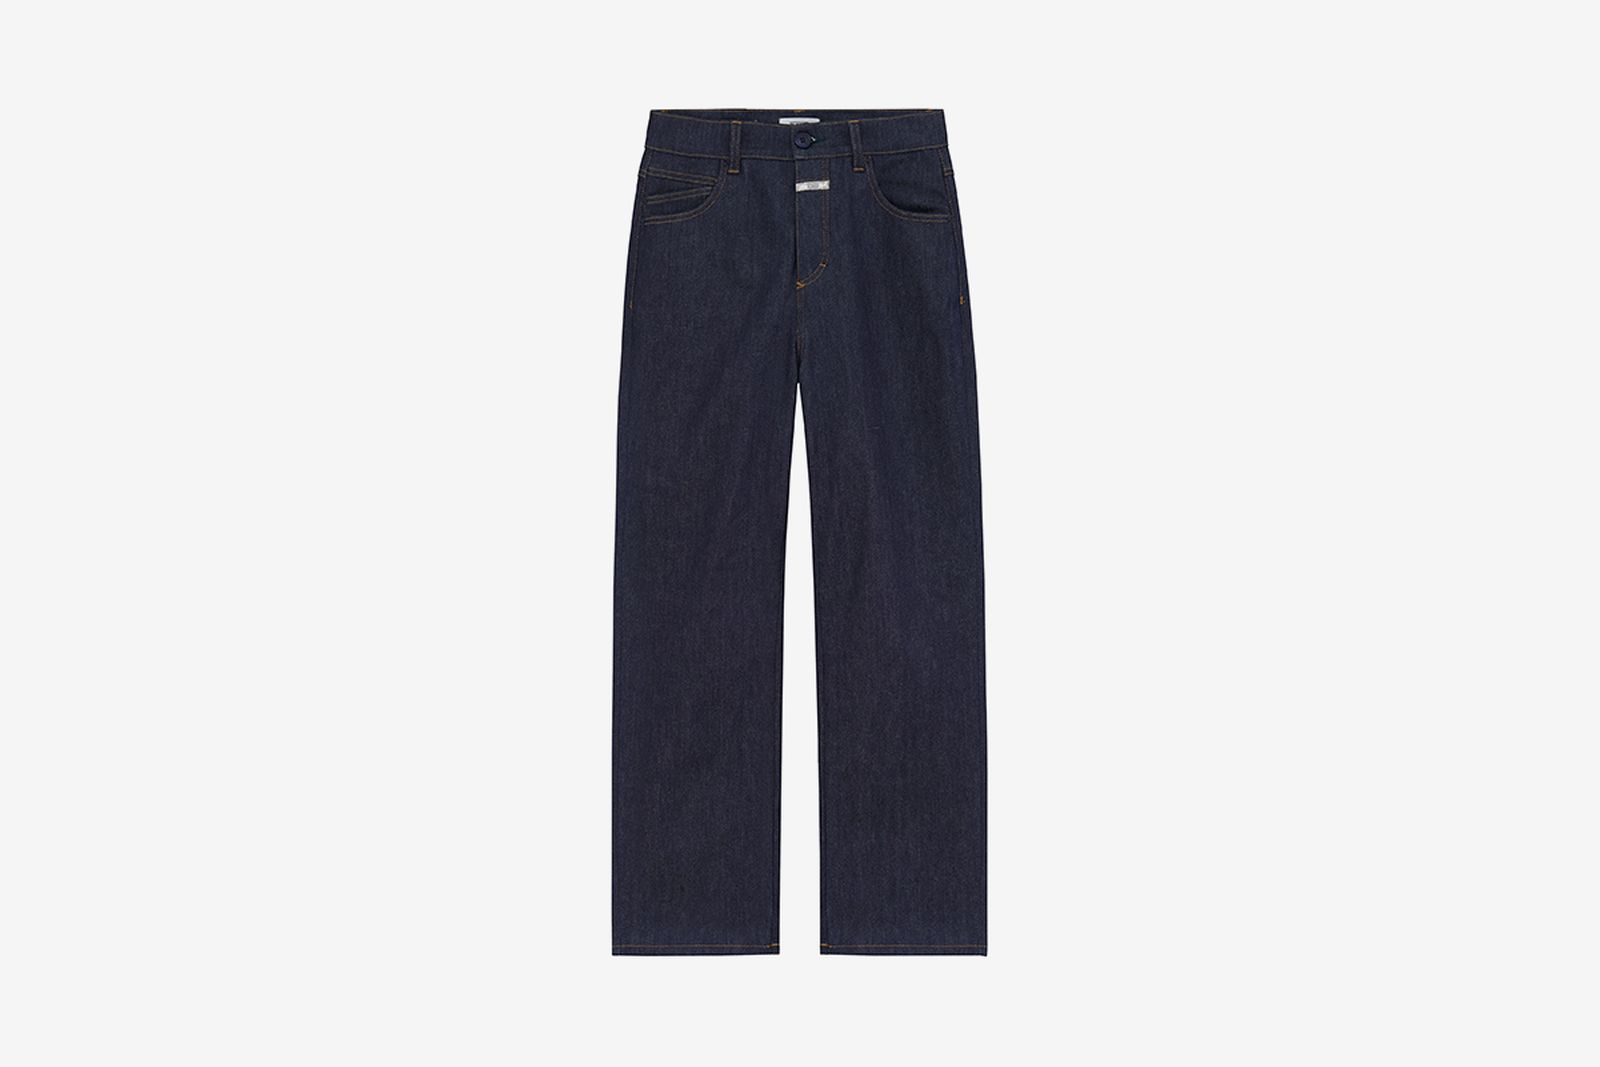 closed-degradable-denim-products-05